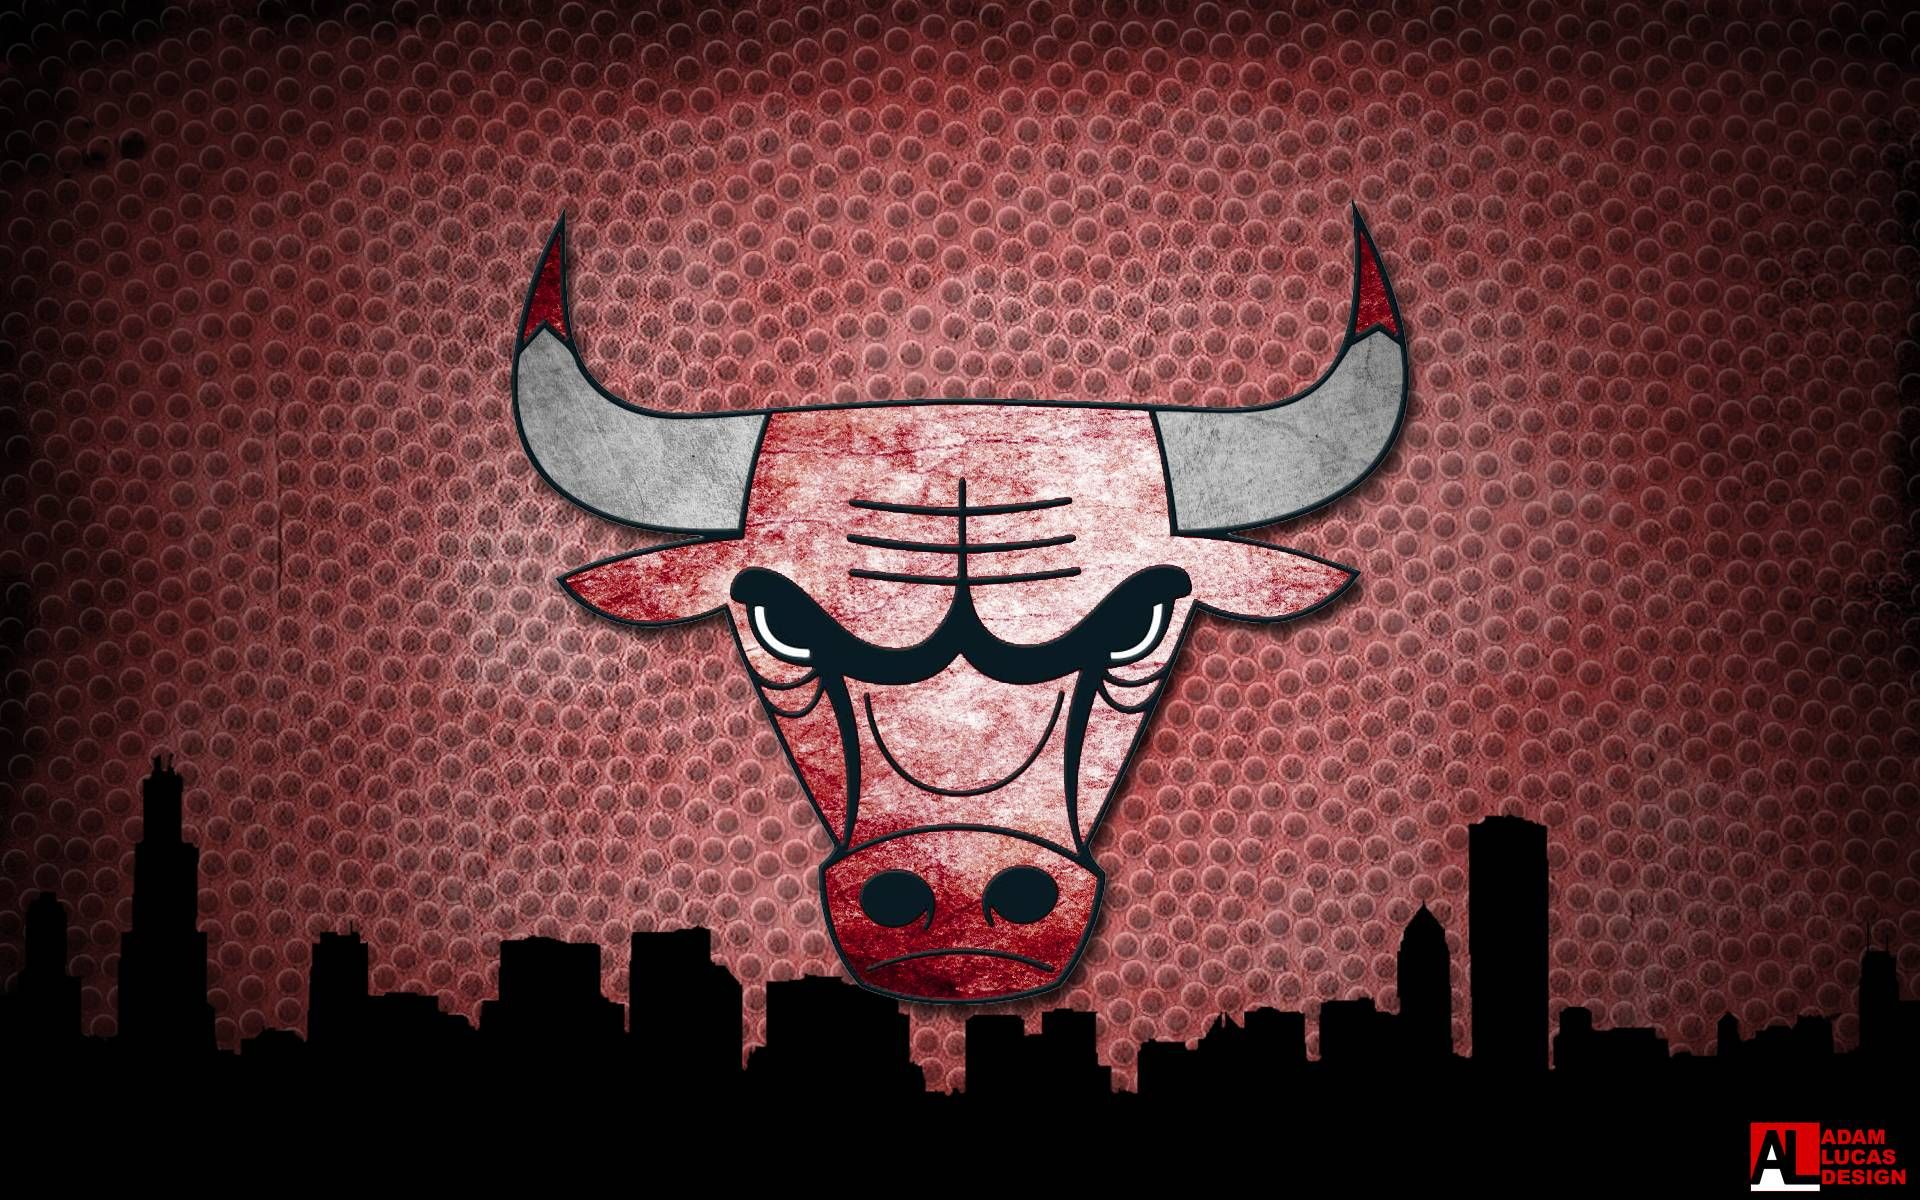 Chicago bulls wallpapers hd wallpaper cave best games chicago bulls wallpapers hd wallpaper cave voltagebd Images